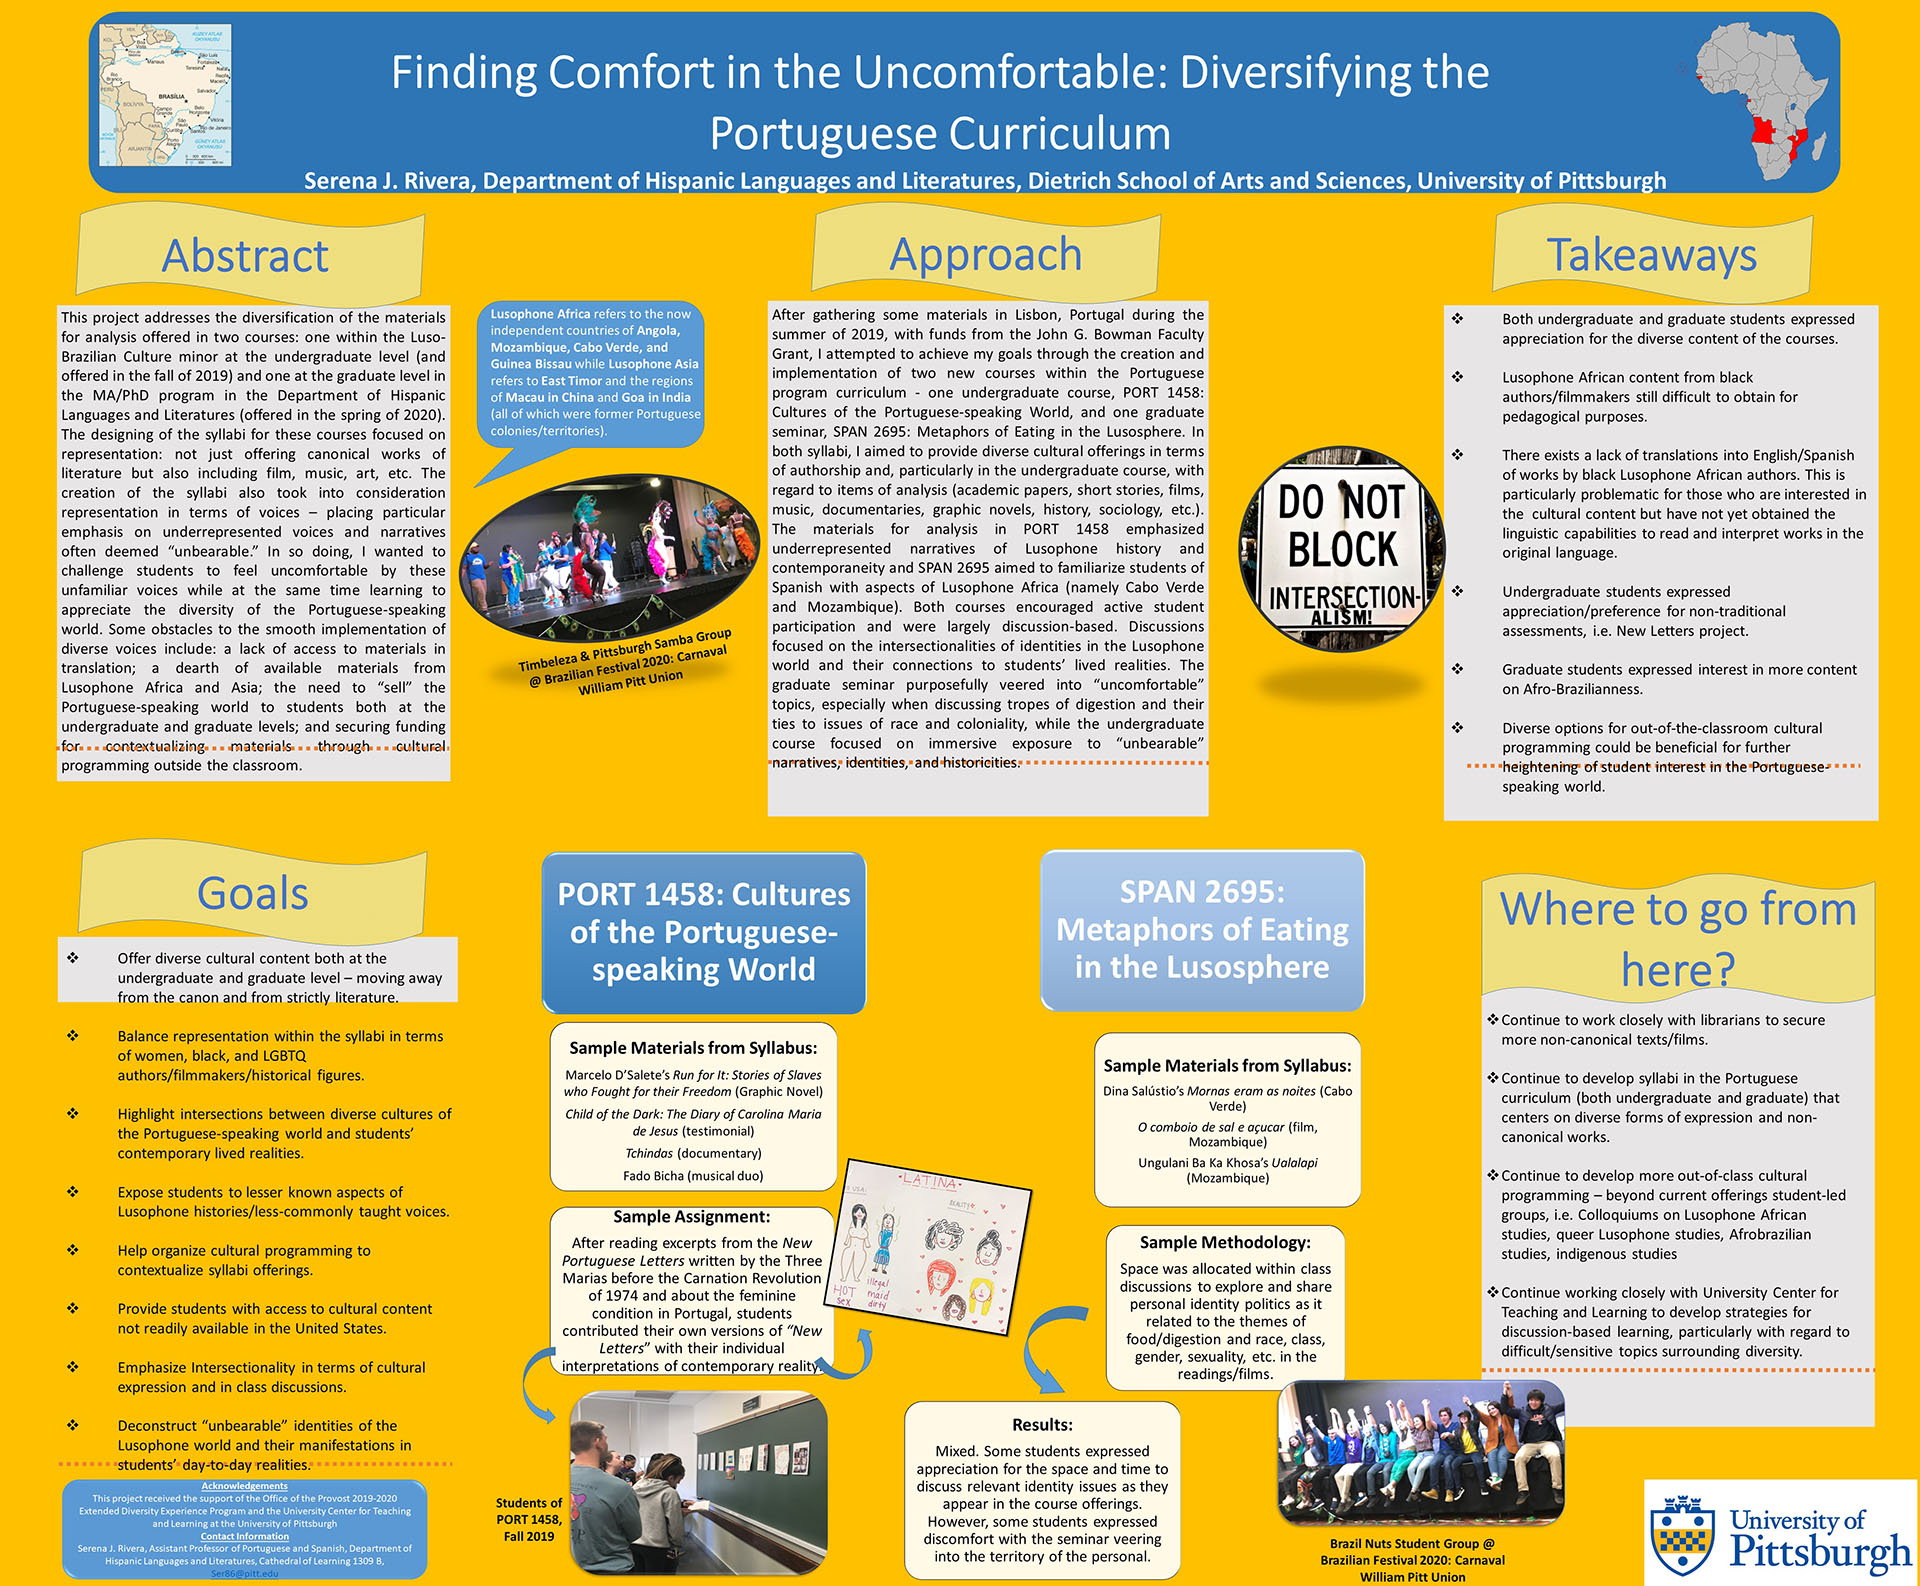 Serena J. Rivera, PhD - Extended Diversity Experience 2020 Poster - Finding Comfort in the Uncomfortable: Diversifying the Portuguese Curriculum